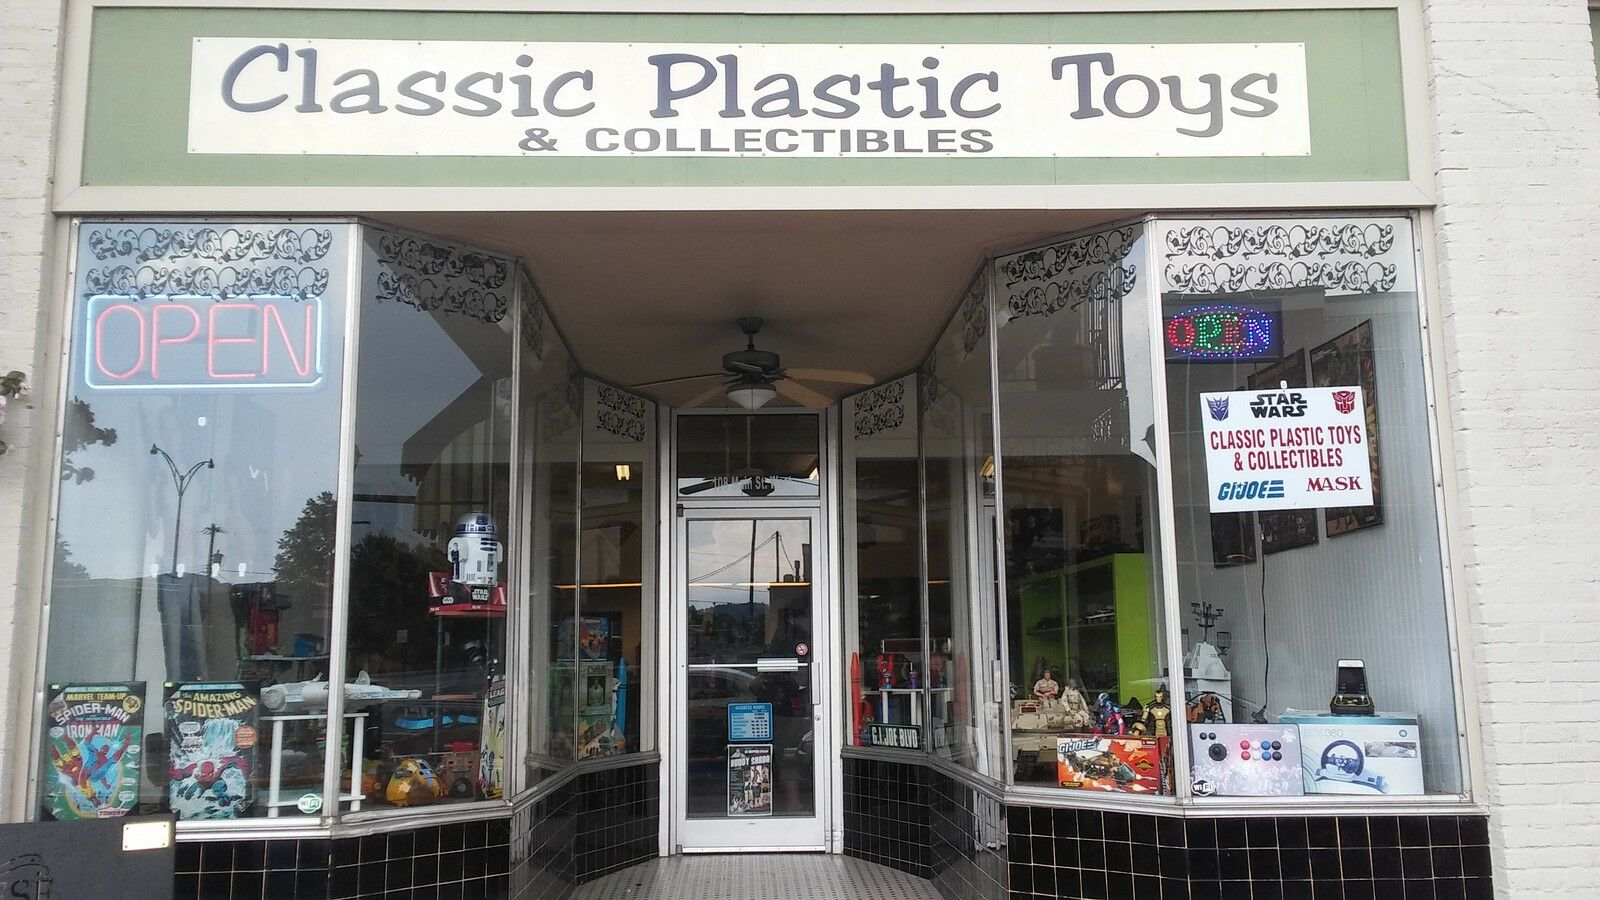 CLASSIC PLASTIC TOYS & COLLECTIBLES